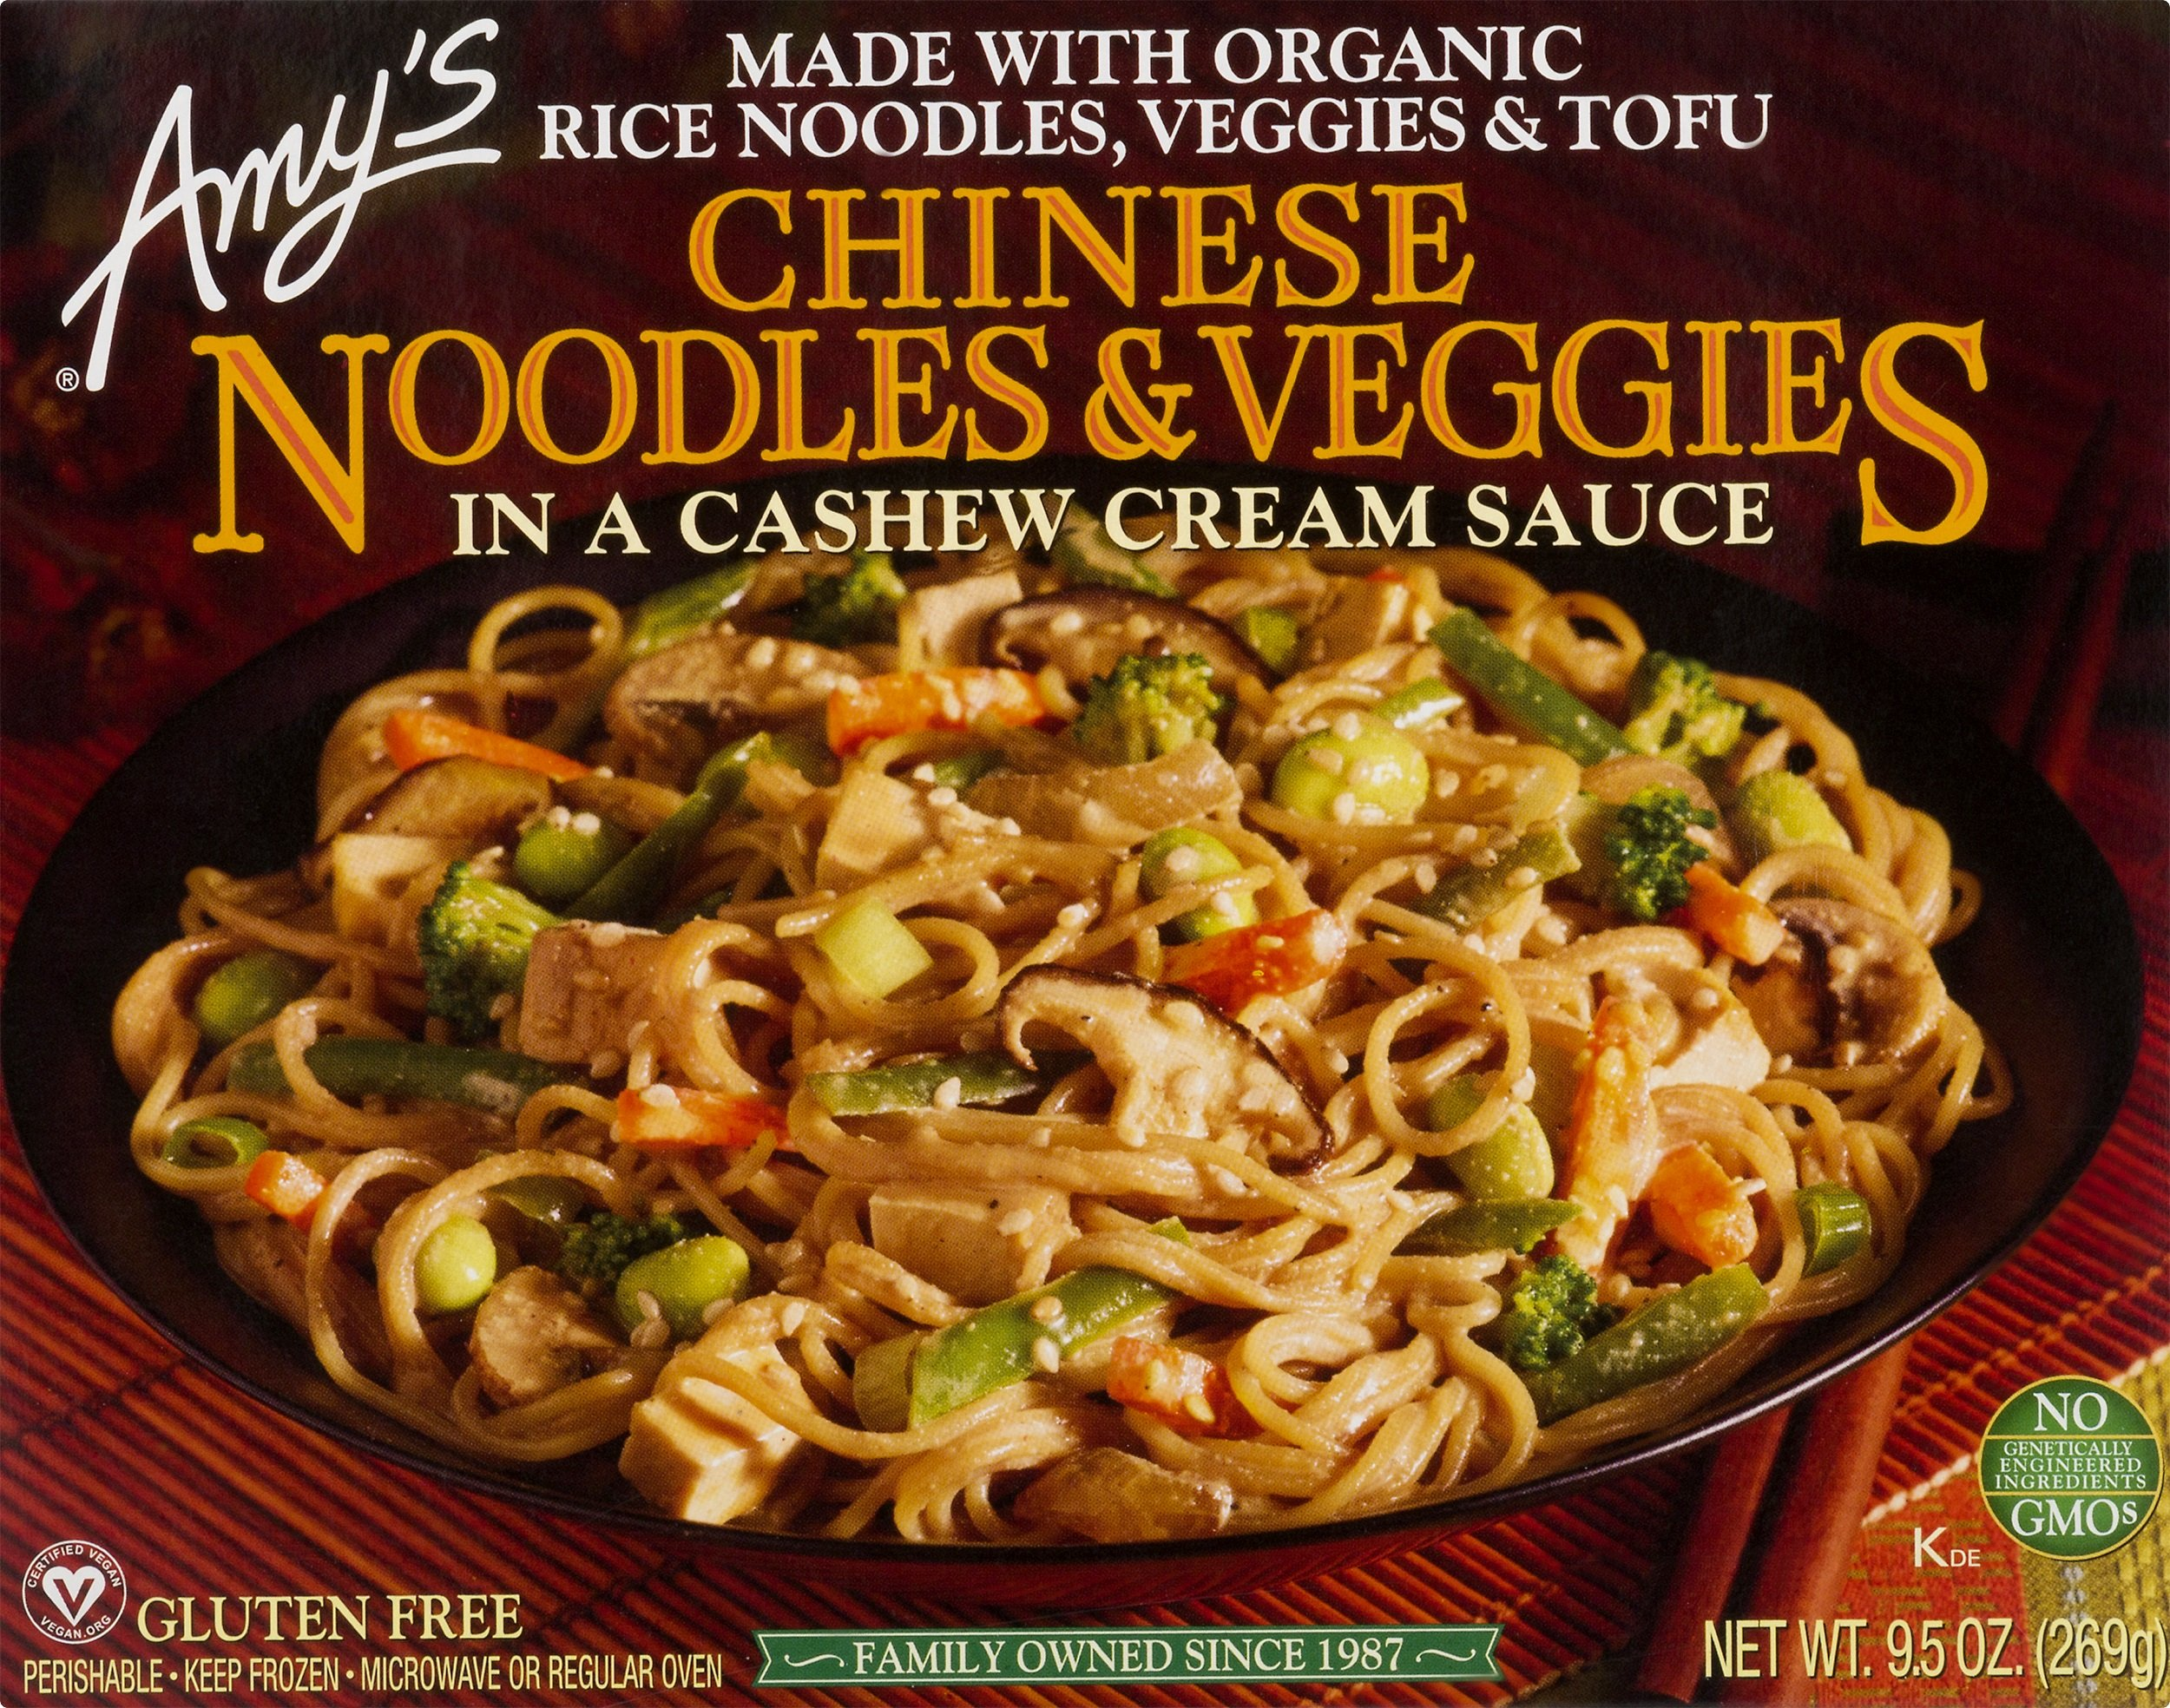 Amy's Organic Chinese Noodles and Veggies in Cashew Cream Sauce, 9.5 Ounce (Pack of 12)